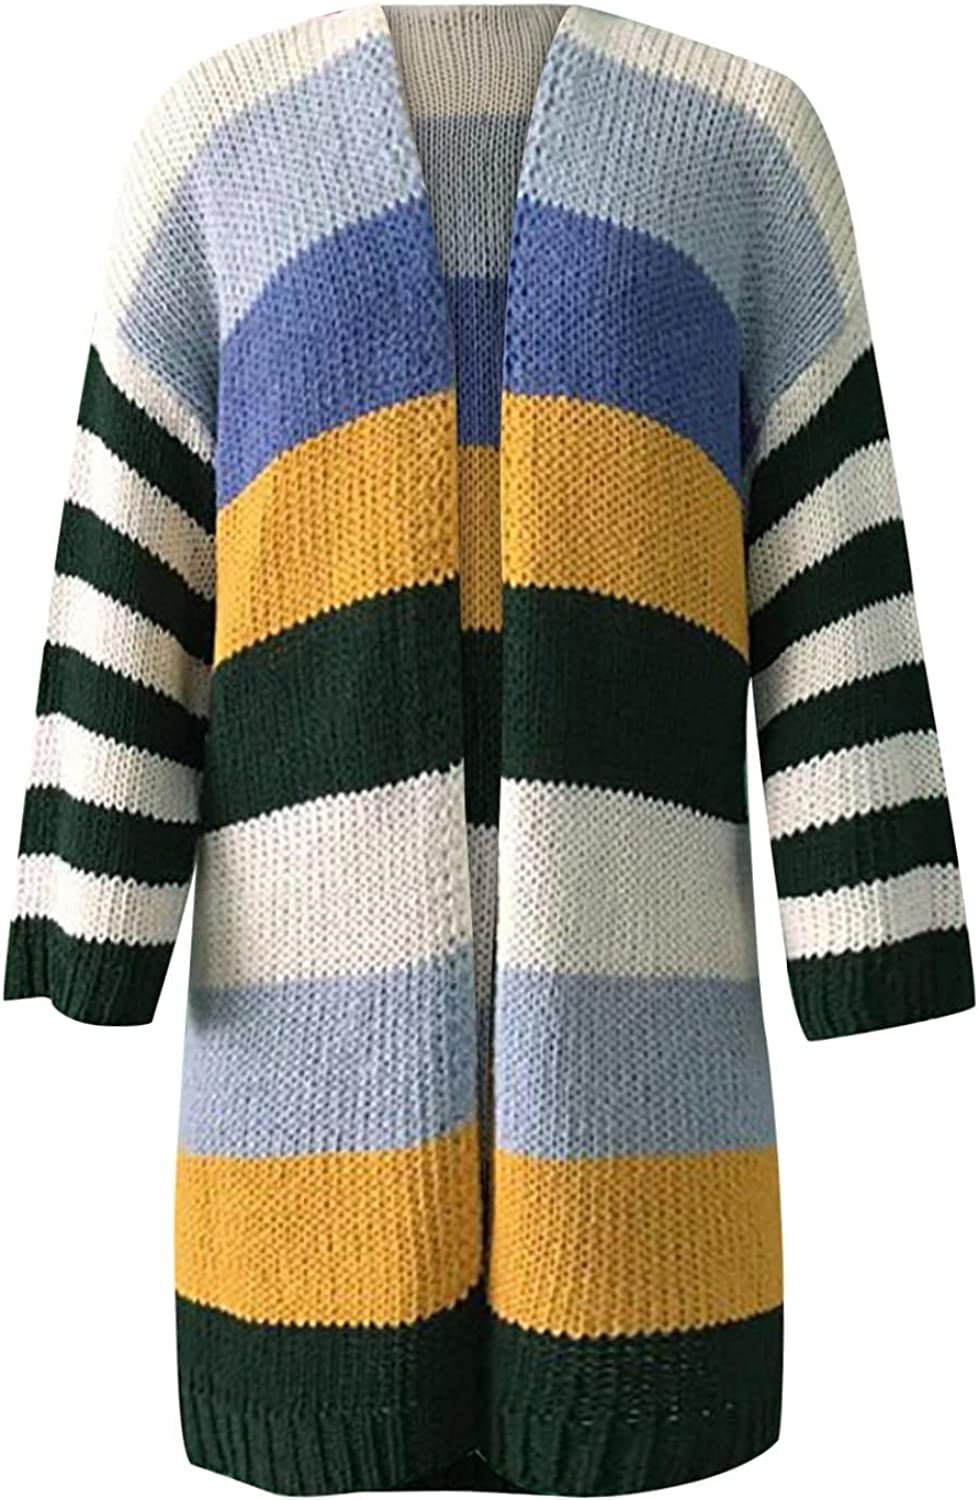 CofeeMO Womens Fall Warm Patchwork All-Match Sweater Long Sleeve Coat Casual Tops Loose Splicing Mid-Length